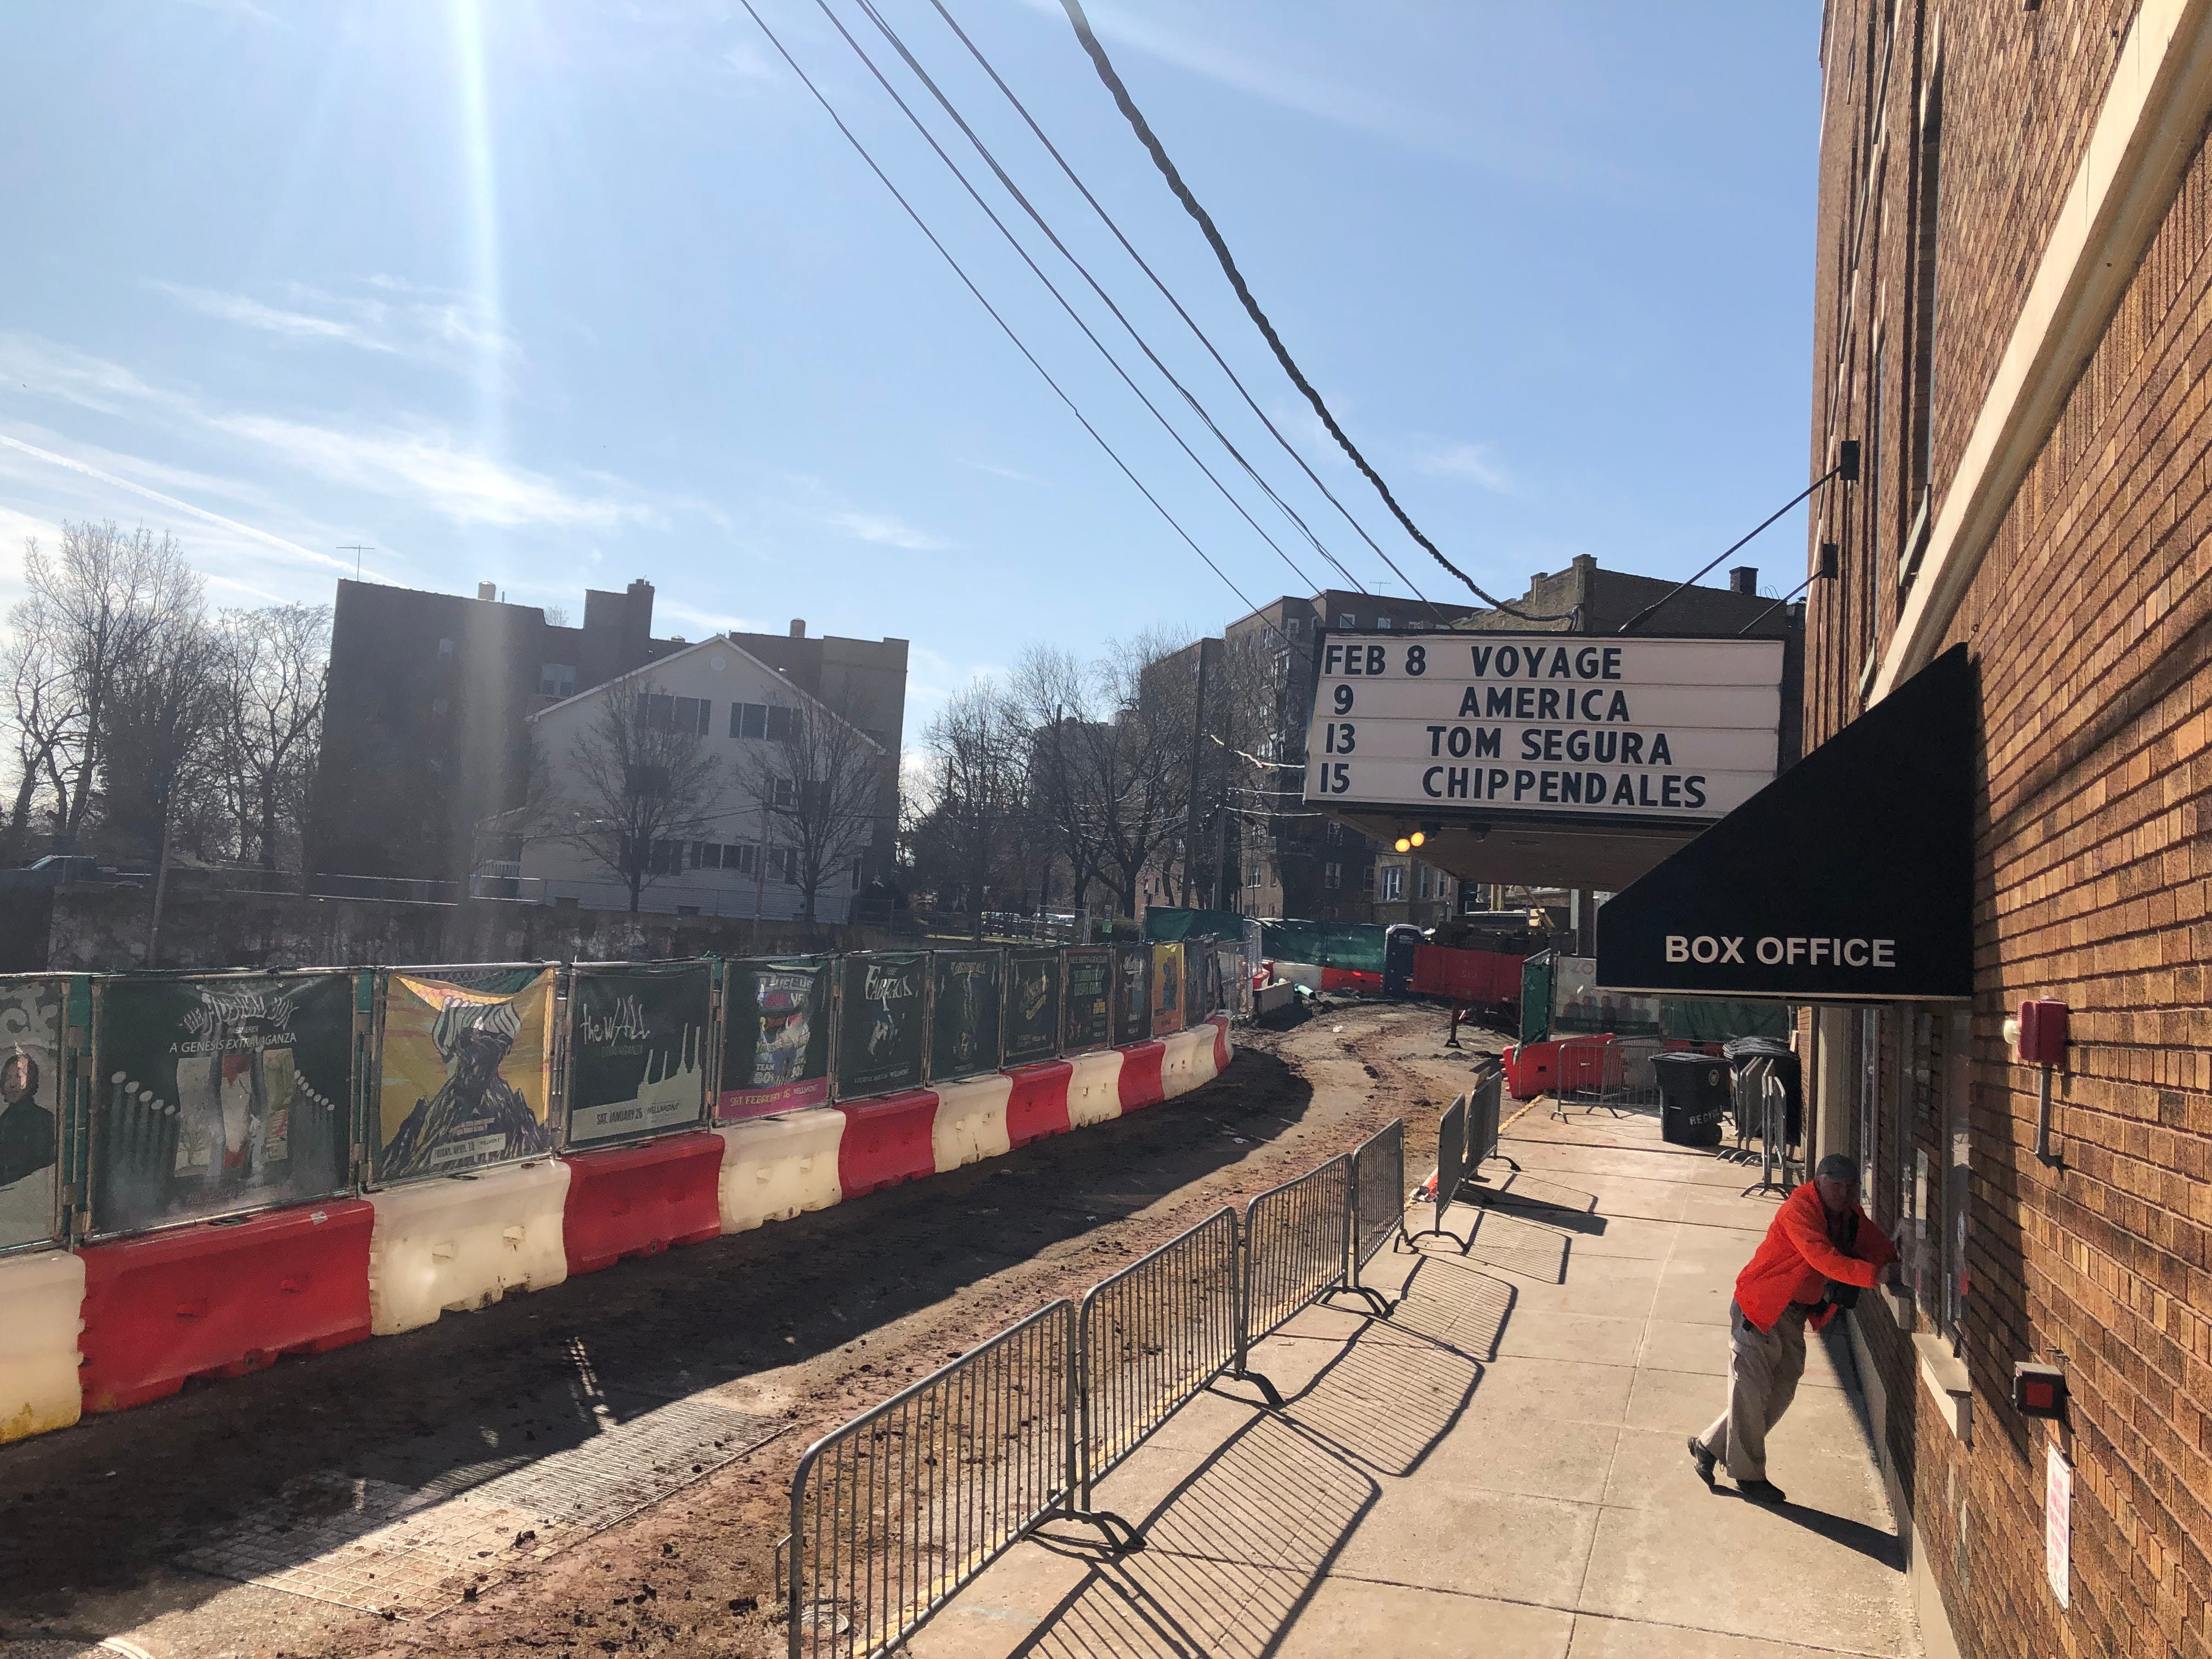 The historic Wellmont Theatre on Seymour Street will be the focal point for a 2.2 acre redevelopment project there. When completed in 2020 it will include two new buildings with 200 apartments and 75,825 square feet of commercial space.